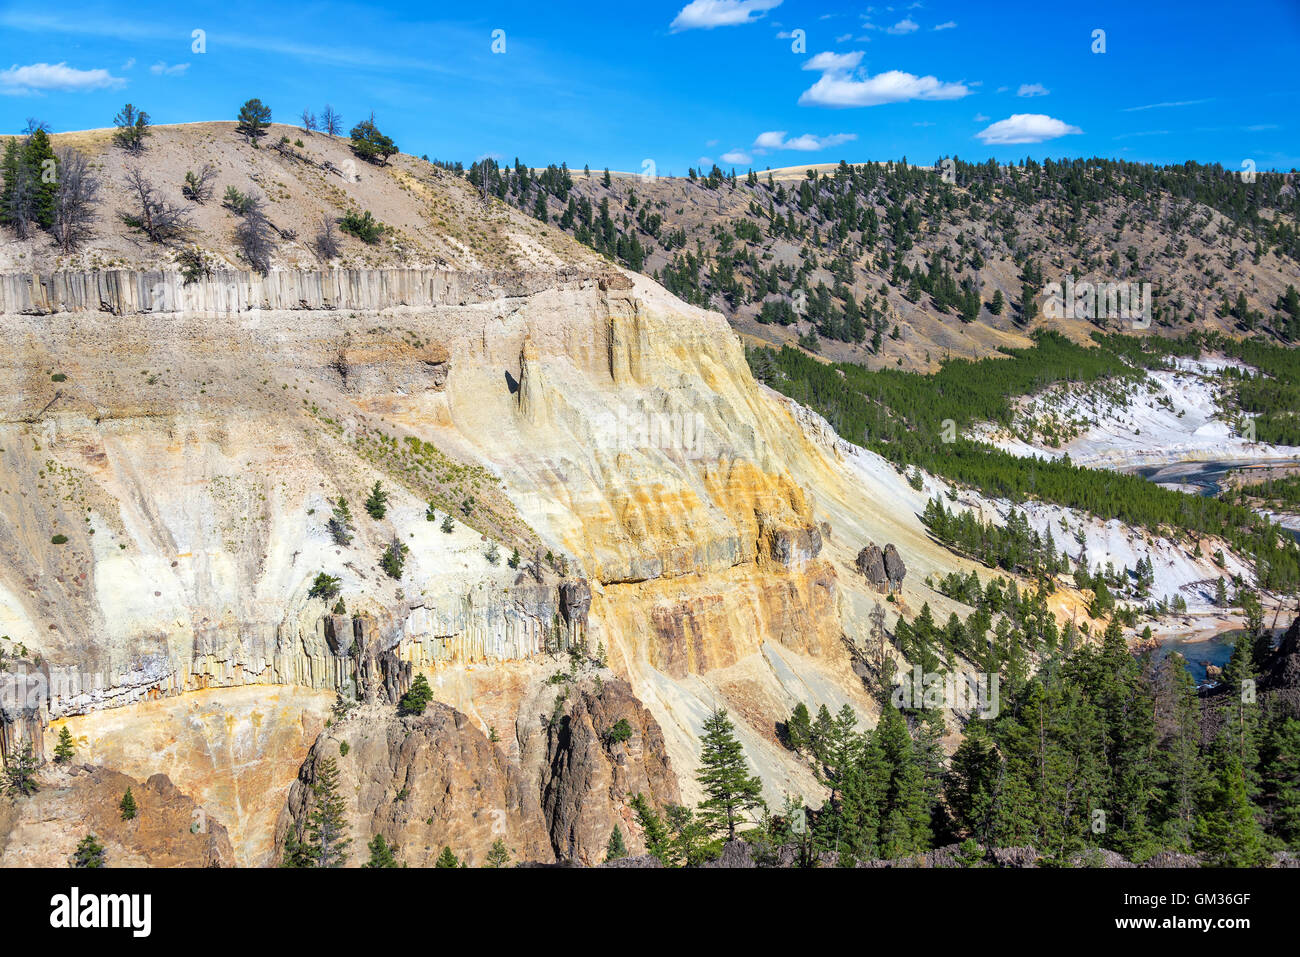 View of a colorful yellow cliff with the Yellowstone River passing below in Yellowstone National Park - Stock Image